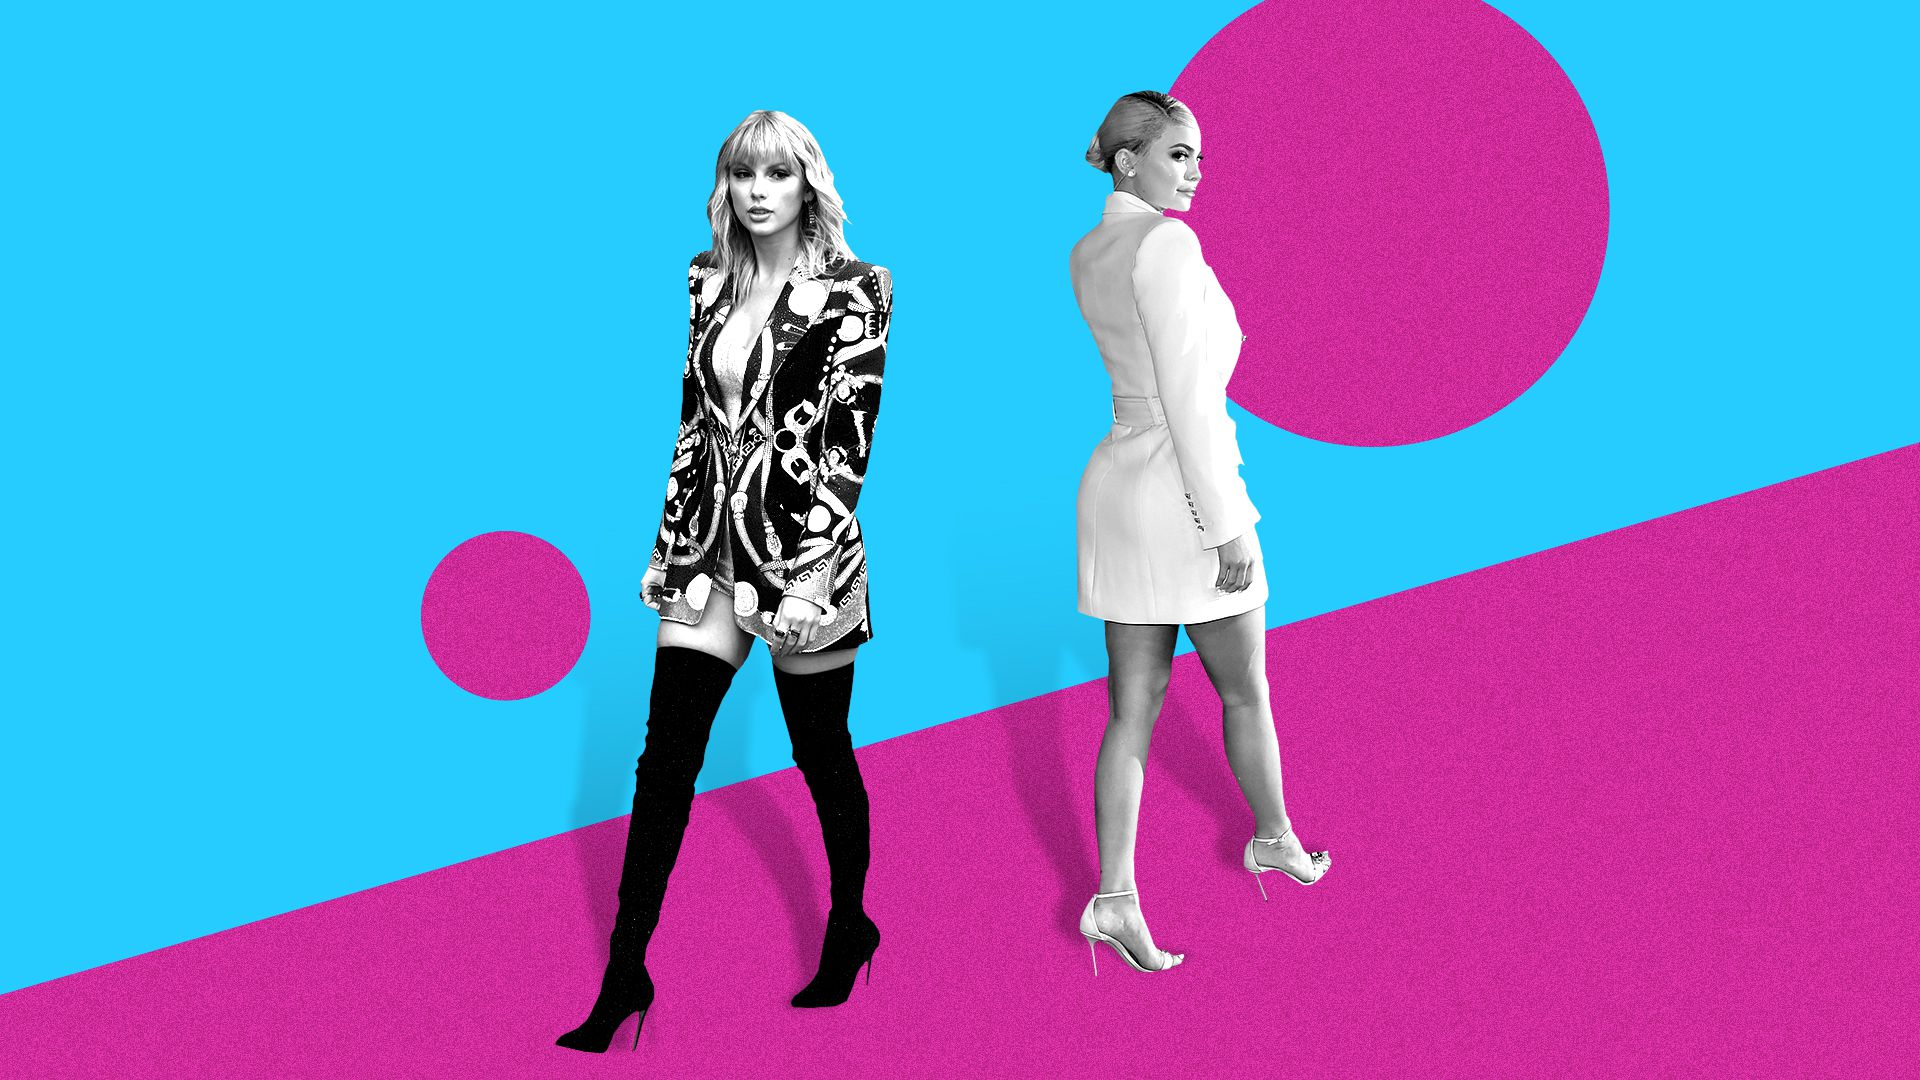 Photo illustration of Taylor Swift and Kylie Jenner.